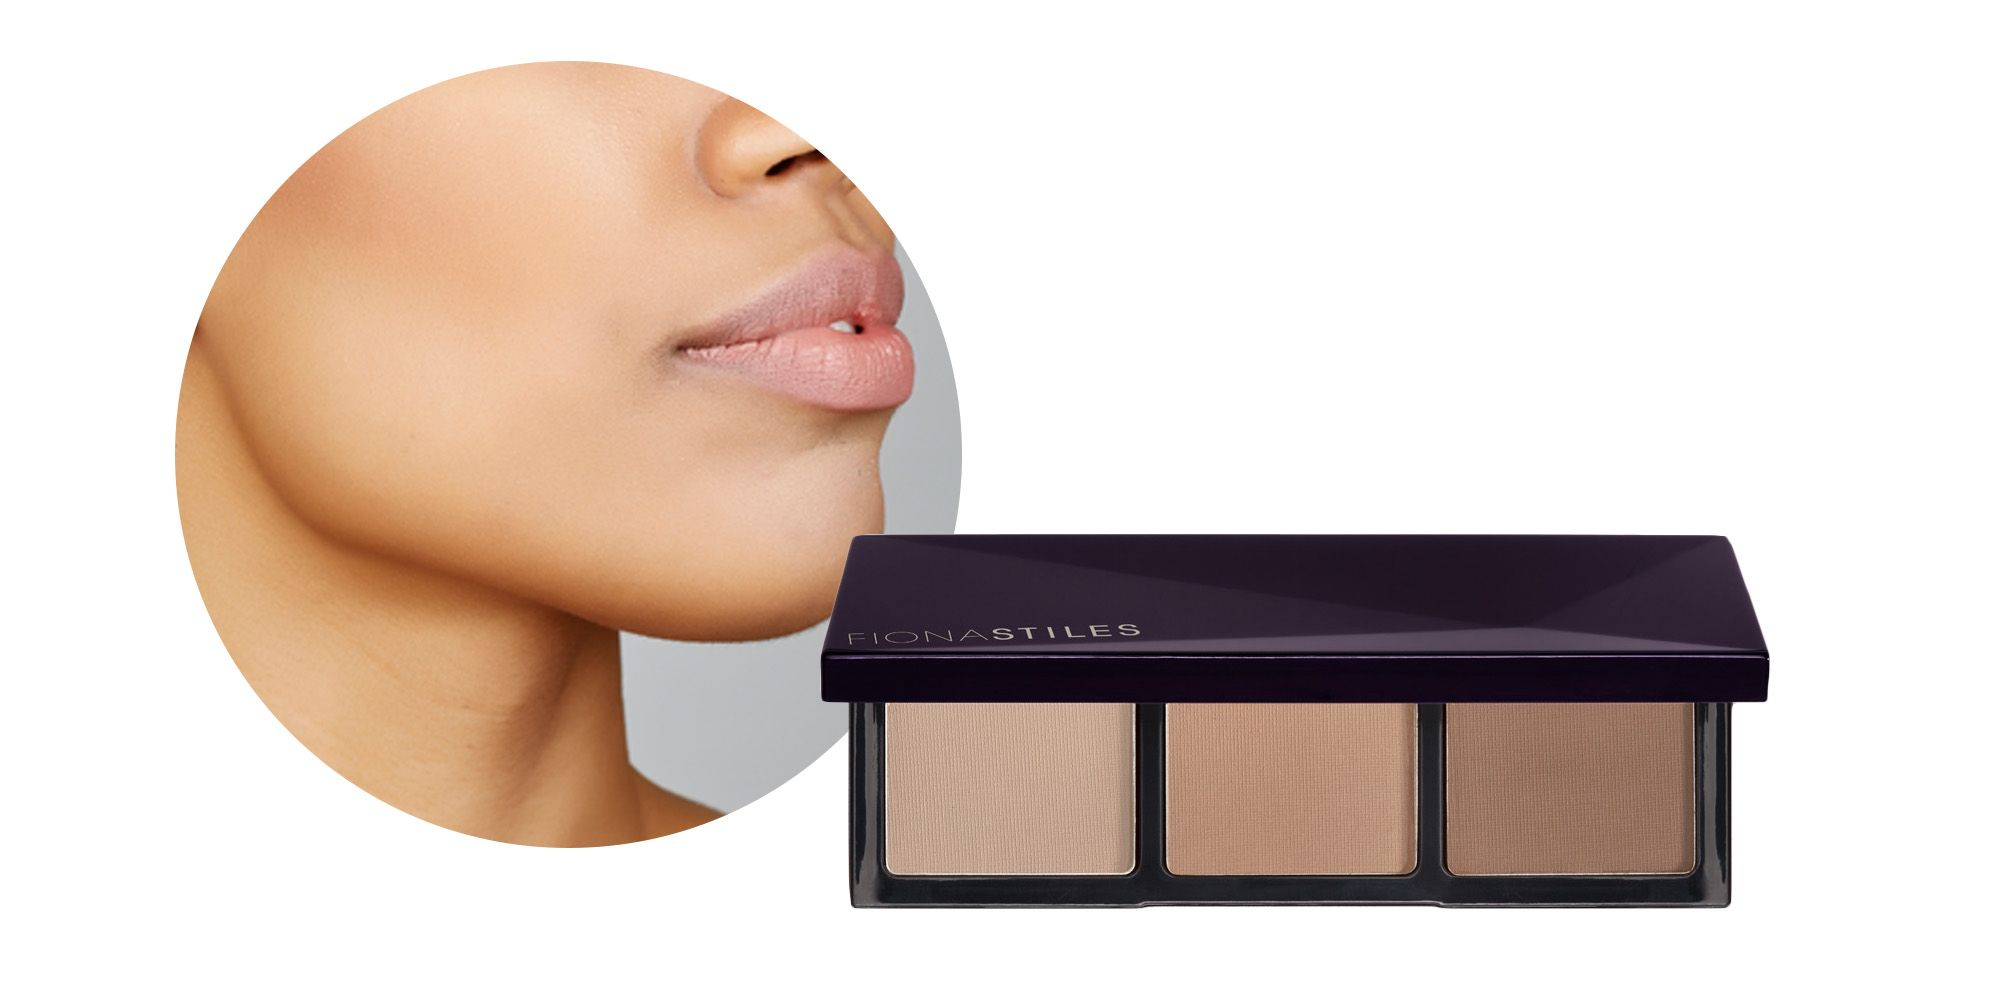 "<p>For warm, deeper skin tones, Sir John uses contour shades with gray undertones to increase the depth of the contour. ""A cool matte recedes for that sculpted, hallowed effect,"" he says.</p><p>Try: Fiona Stiles Sheer Sculpting Palette, $28; <a href=""http://bit.ly/2kxKKfN"" target=""_blank"" data-tracking-id=""recirc-text-link"">ulta.com</a>. <span class=""redactor-invisible-space"" data-verified=""redactor"" data-redactor-tag=""span"" data-redactor-class=""redactor-invisible-space""></span></p>"